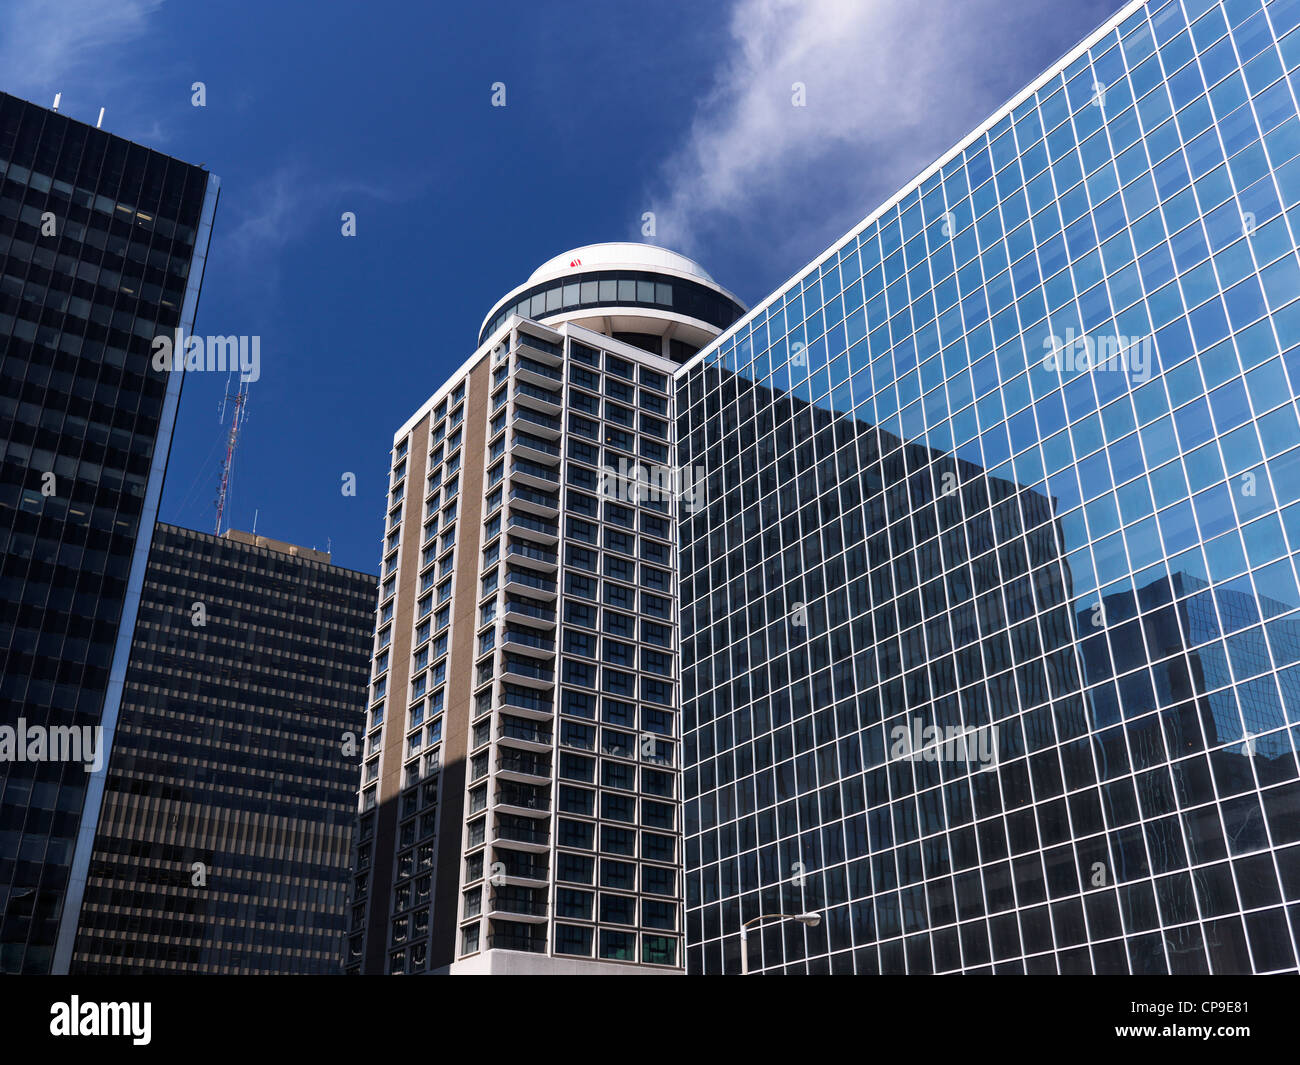 Downtown Ottawa towers. C. D. Howe Building and Marriott Hotel under blue sky. Ontario, Canada. - Stock Image